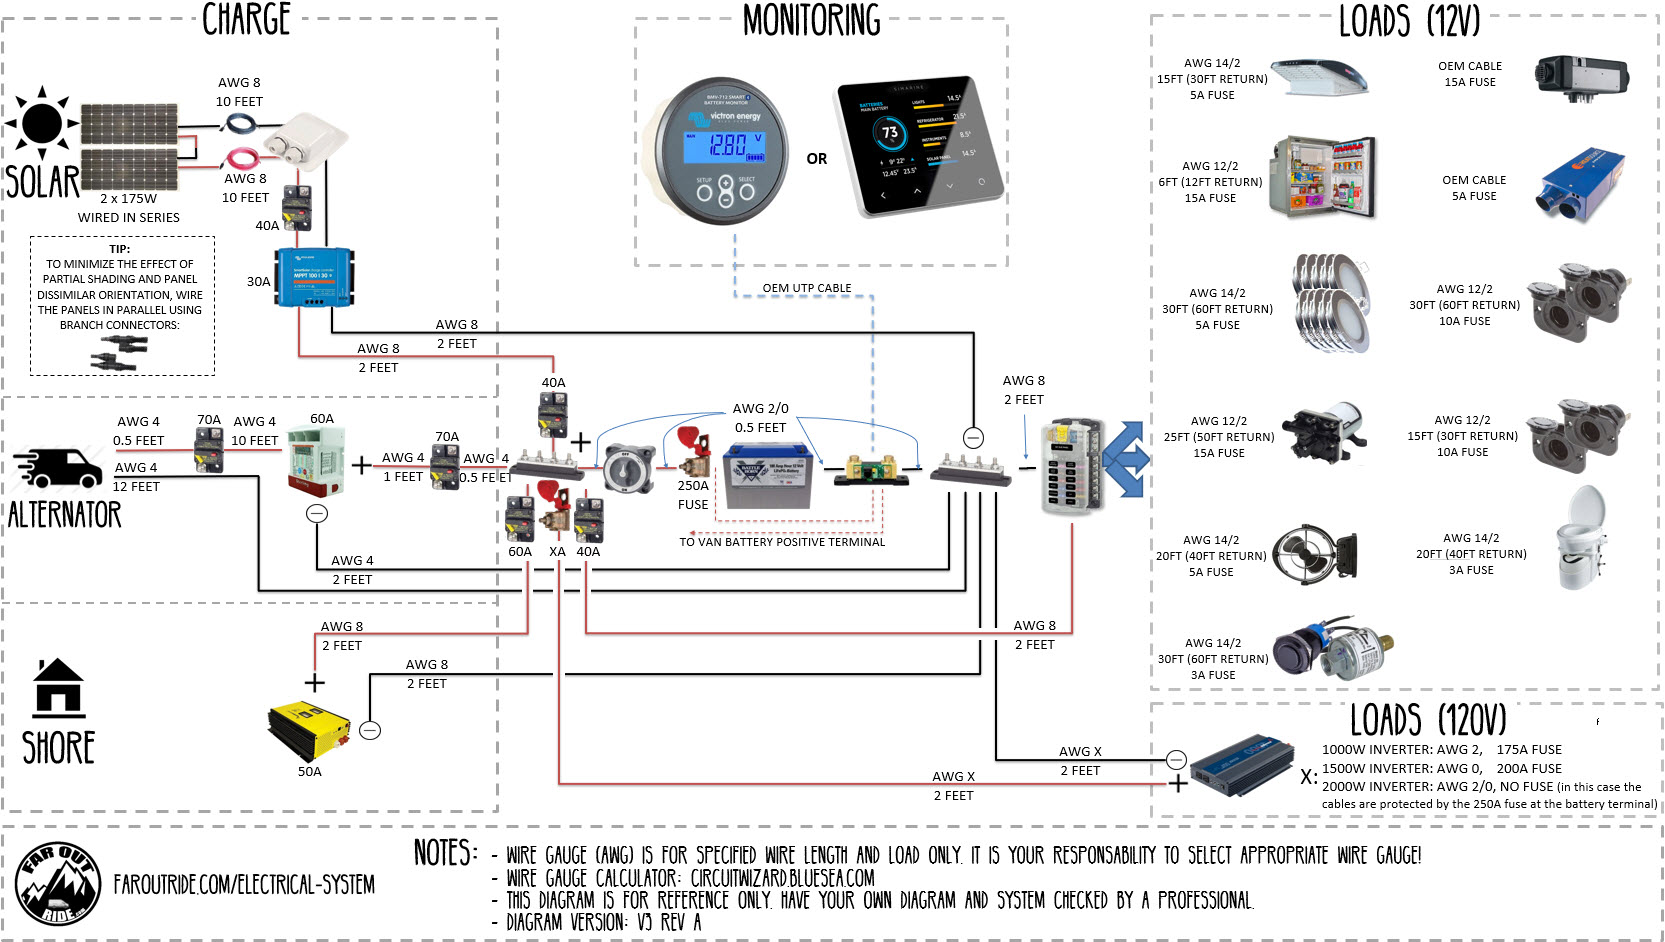 Interactive Wiring Diagram For Camper Van  Skoolie  Rv